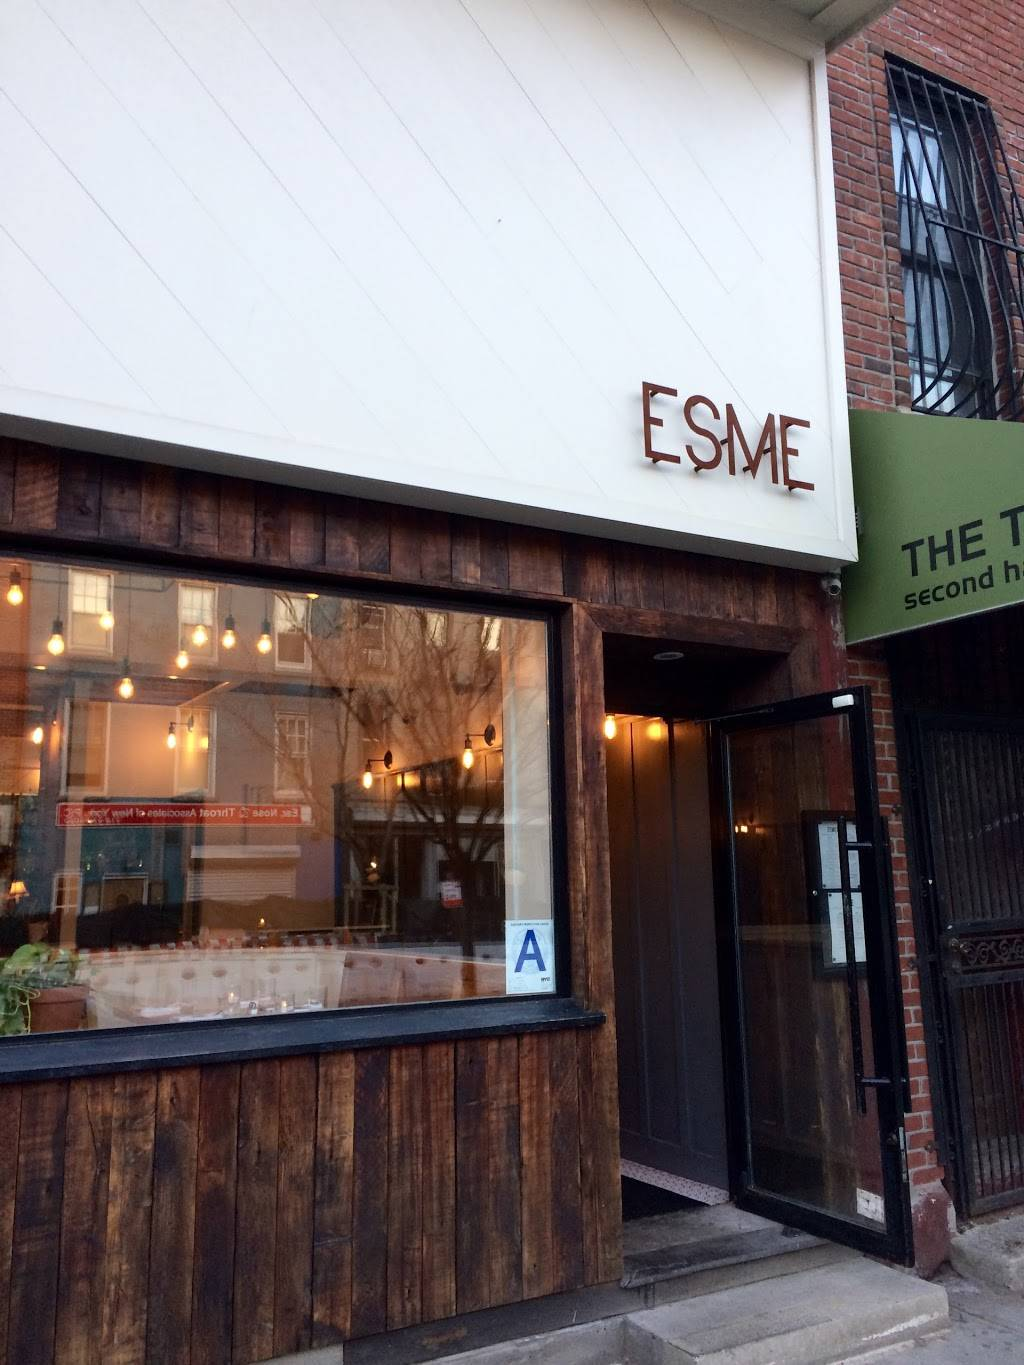 Esme | restaurant | 999 Manhattan Ave, Brooklyn, NY 11222, USA | 7183830999 OR +1 718-383-0999